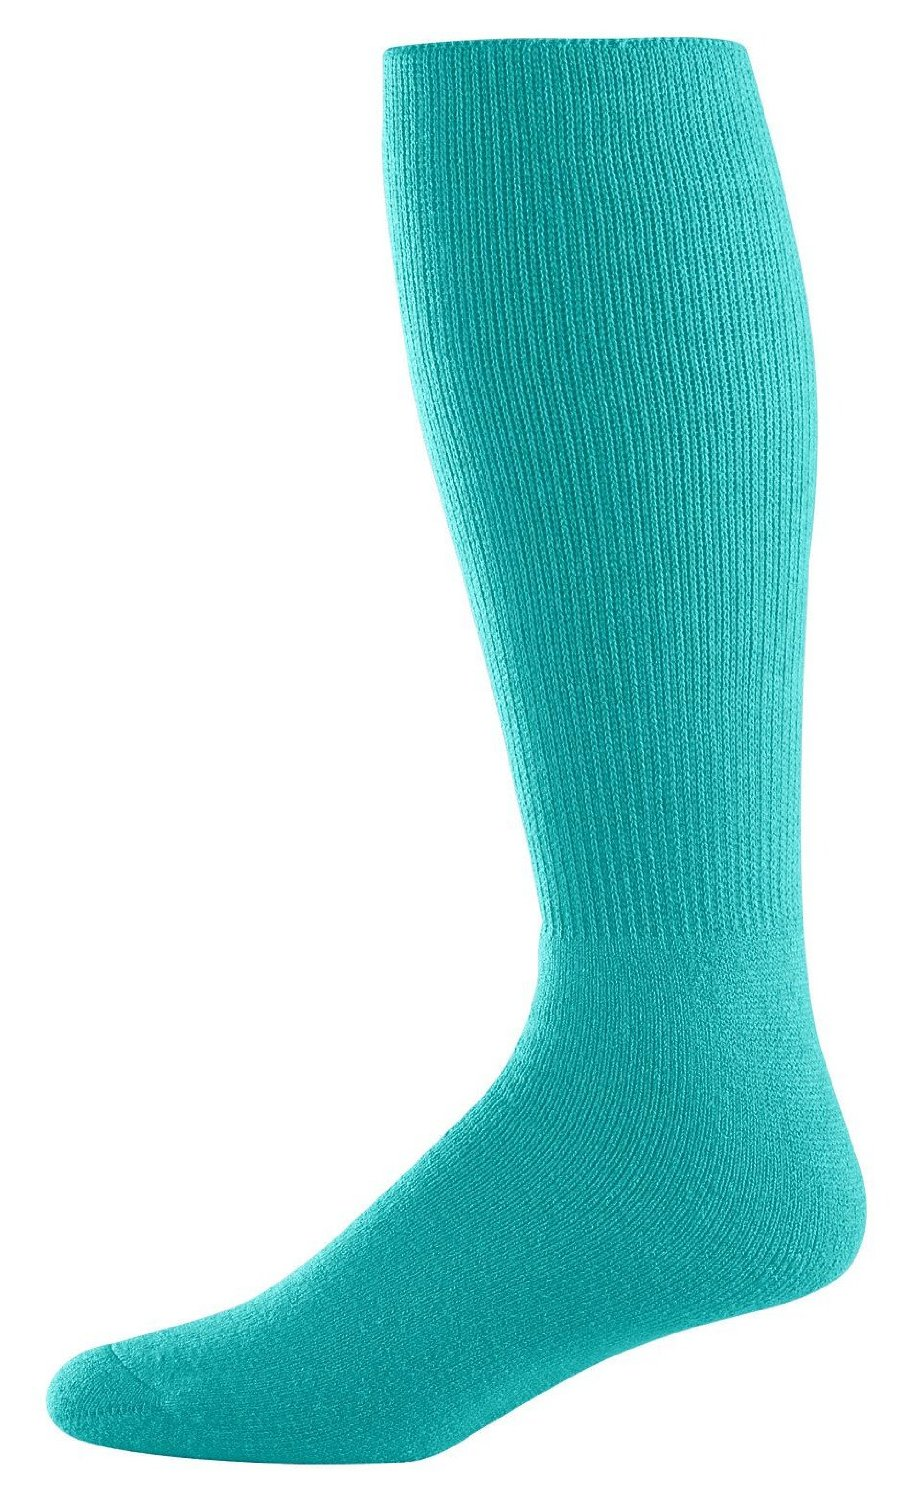 Athletic Socks - Youth Size 7-9, Color: Teal, Size: 7 - 9